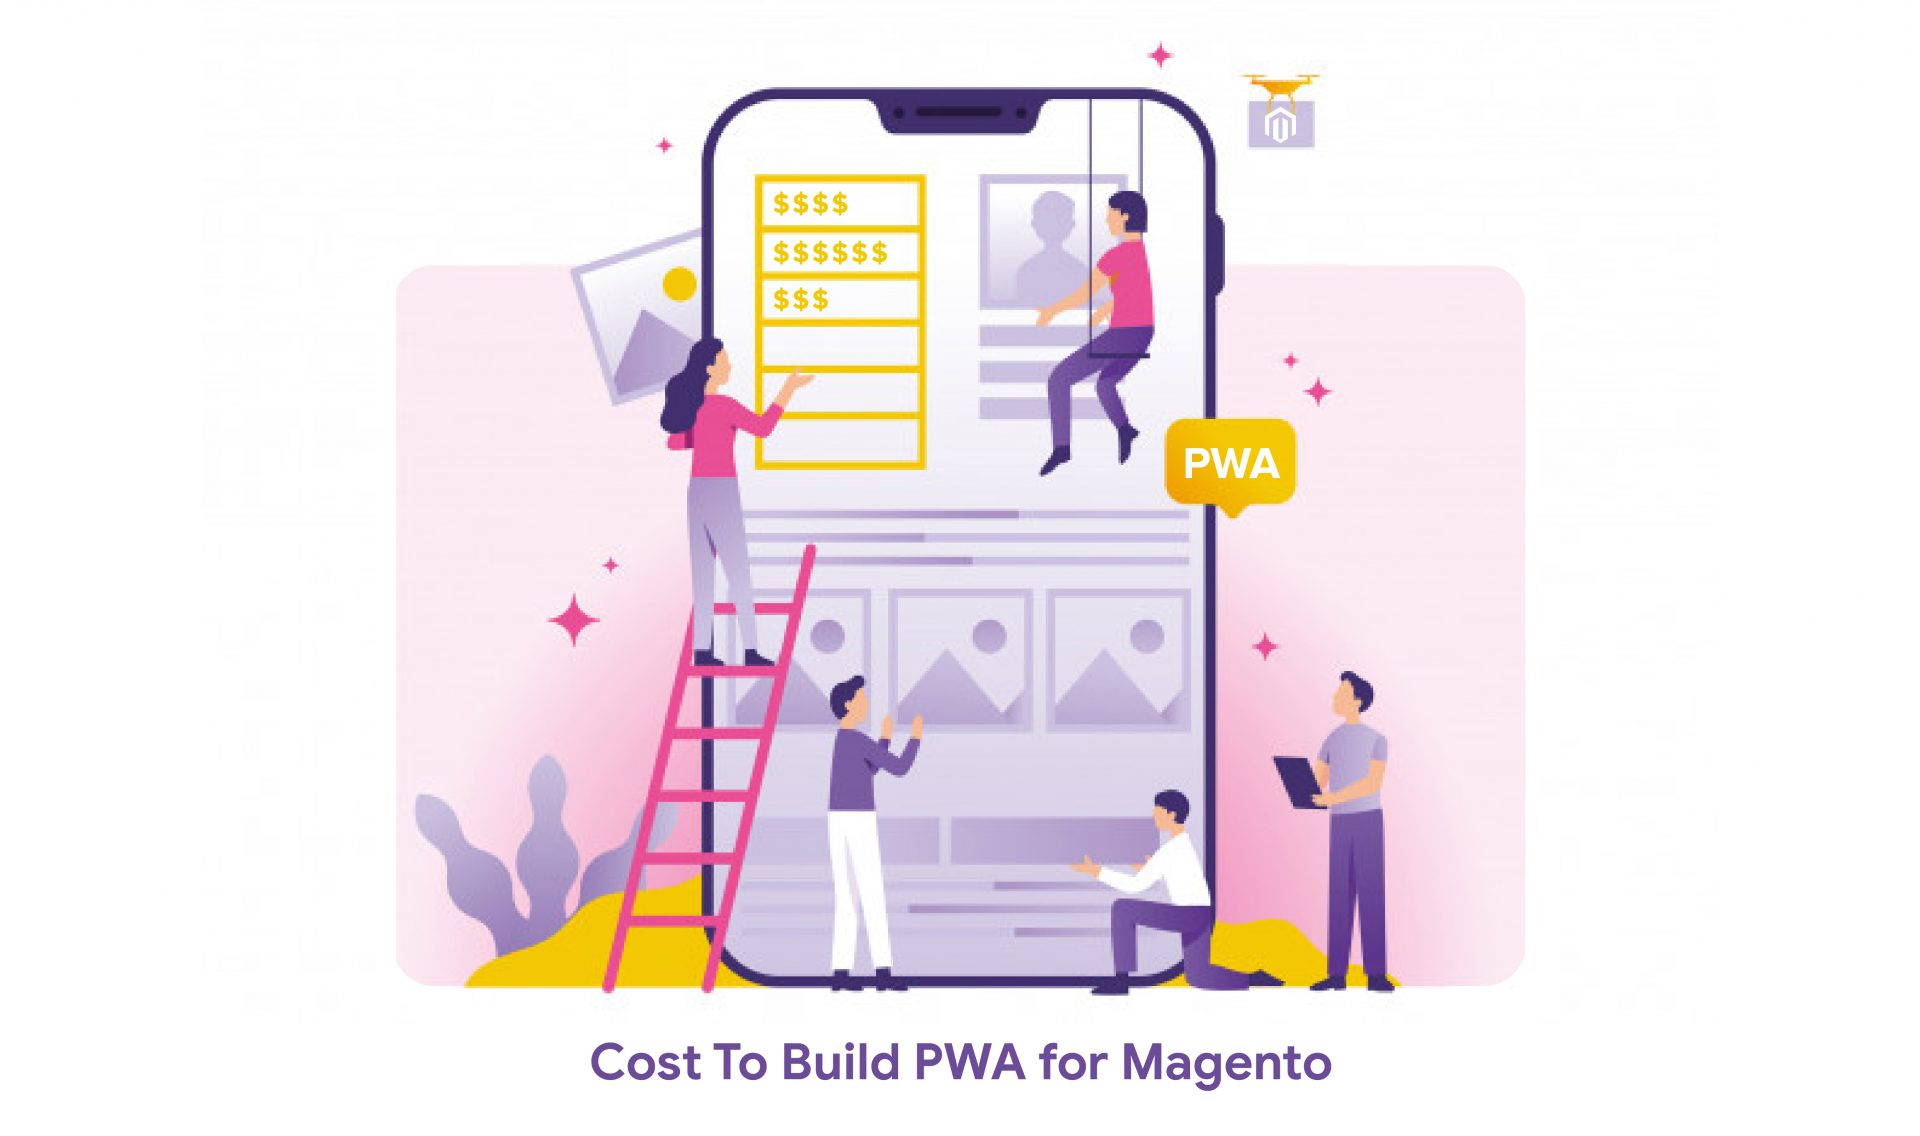 cost-to-build-pwa-for-magento